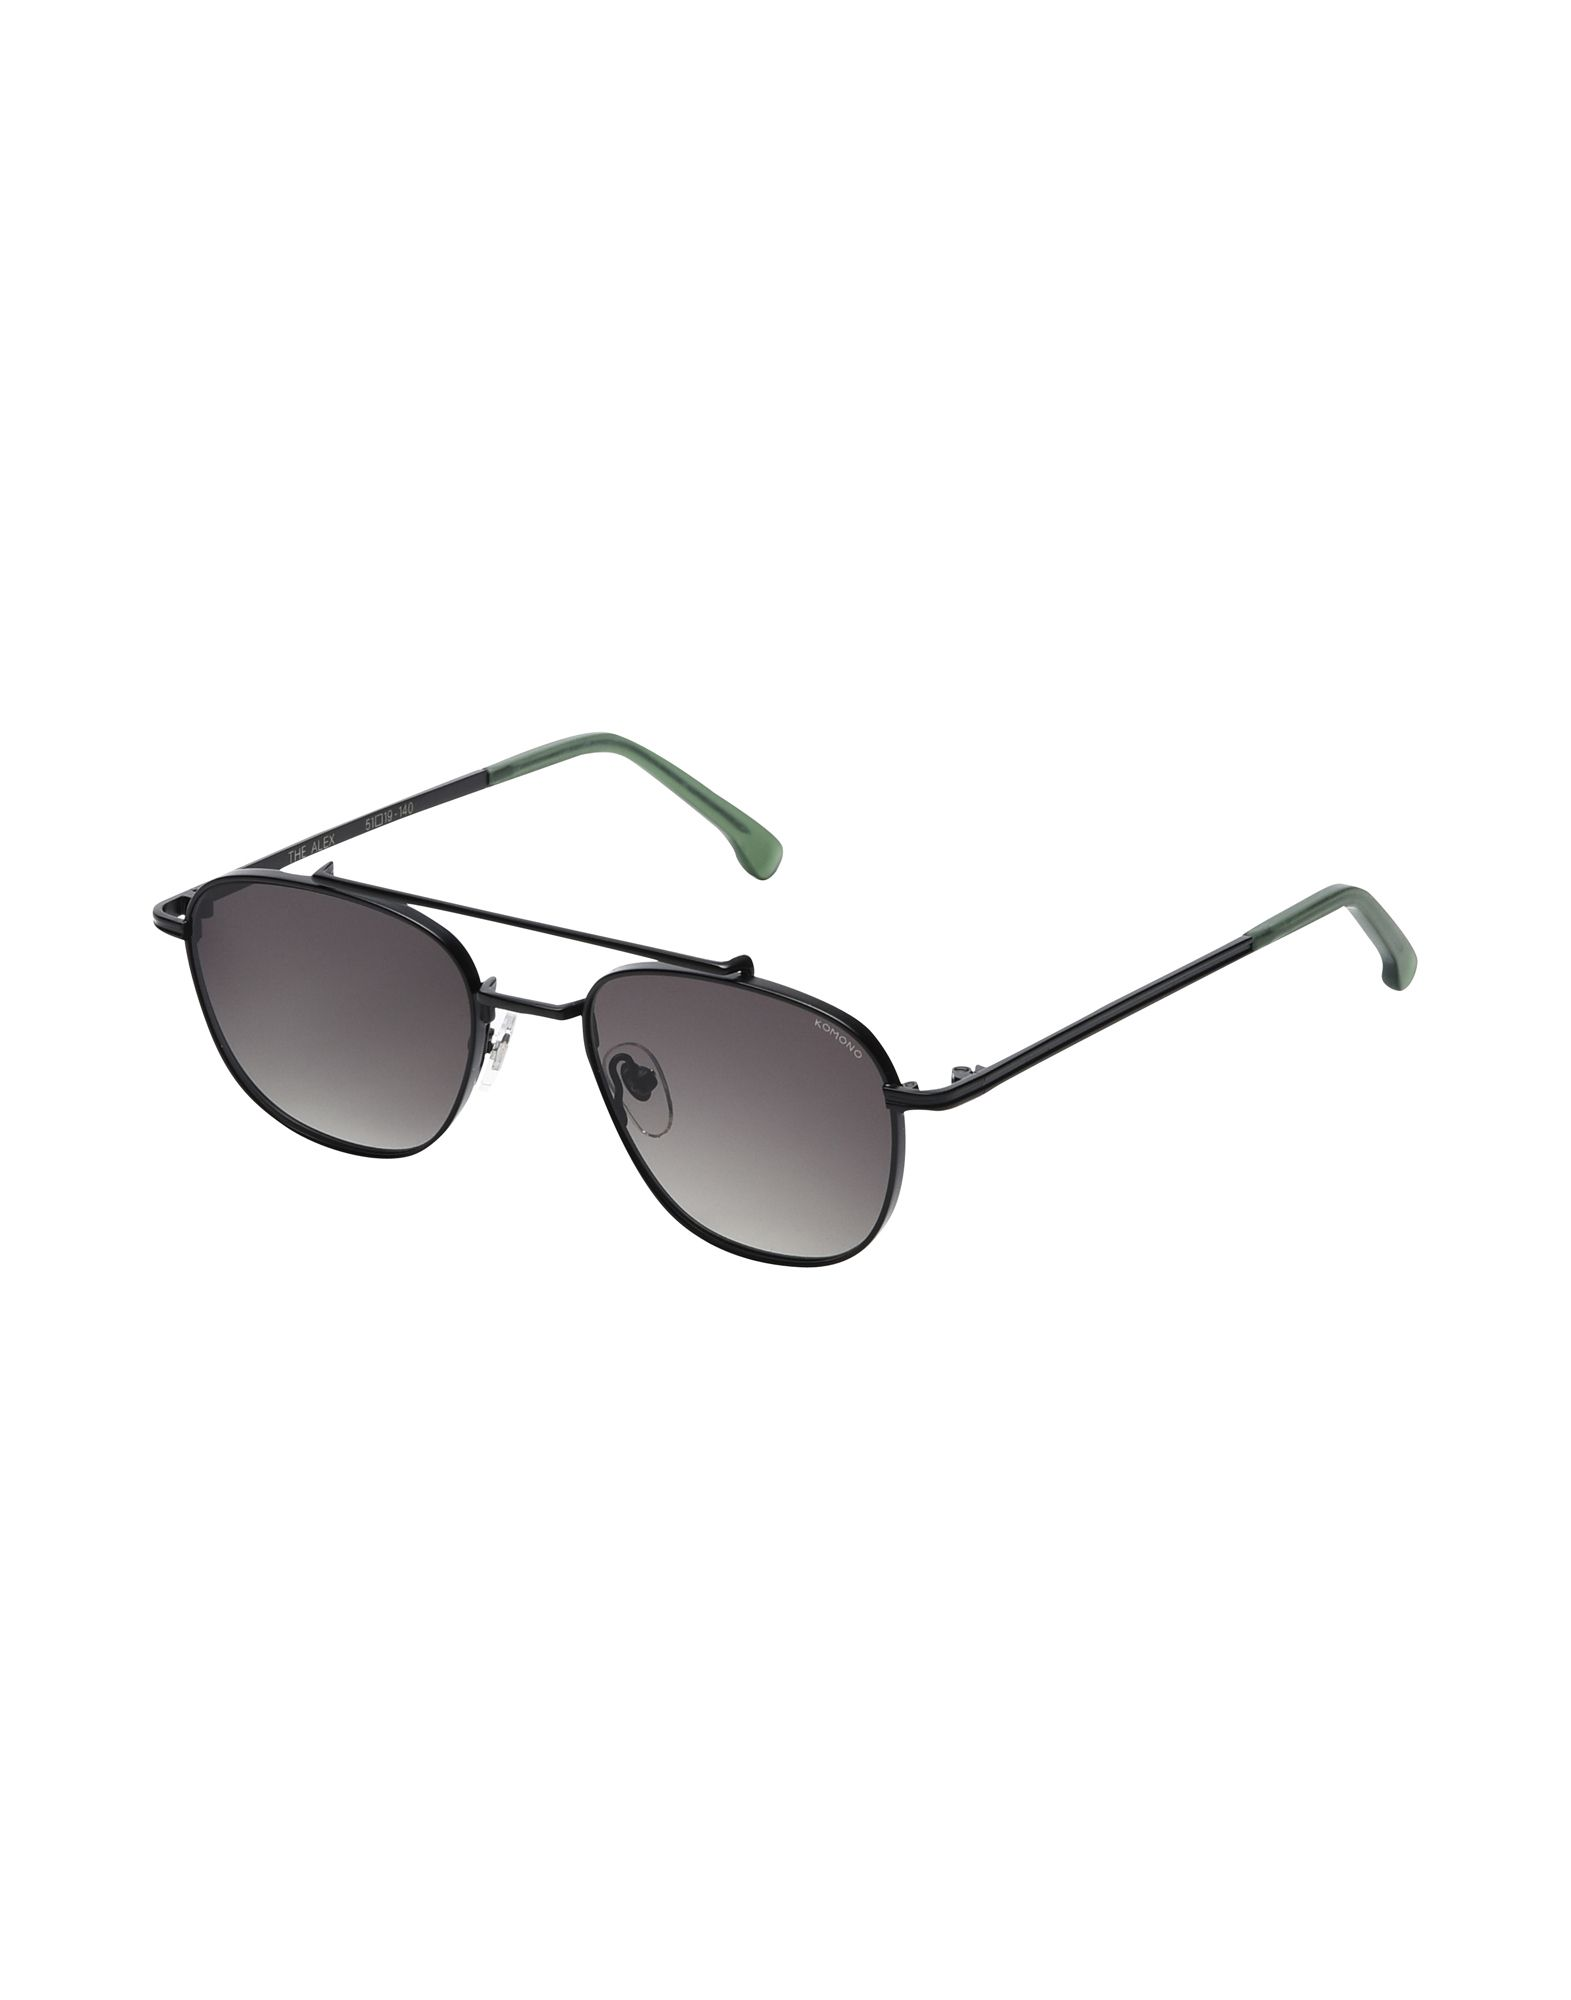 ea589995e85 Komono Men - Komono Sunglasses - YOOX United Kingdom